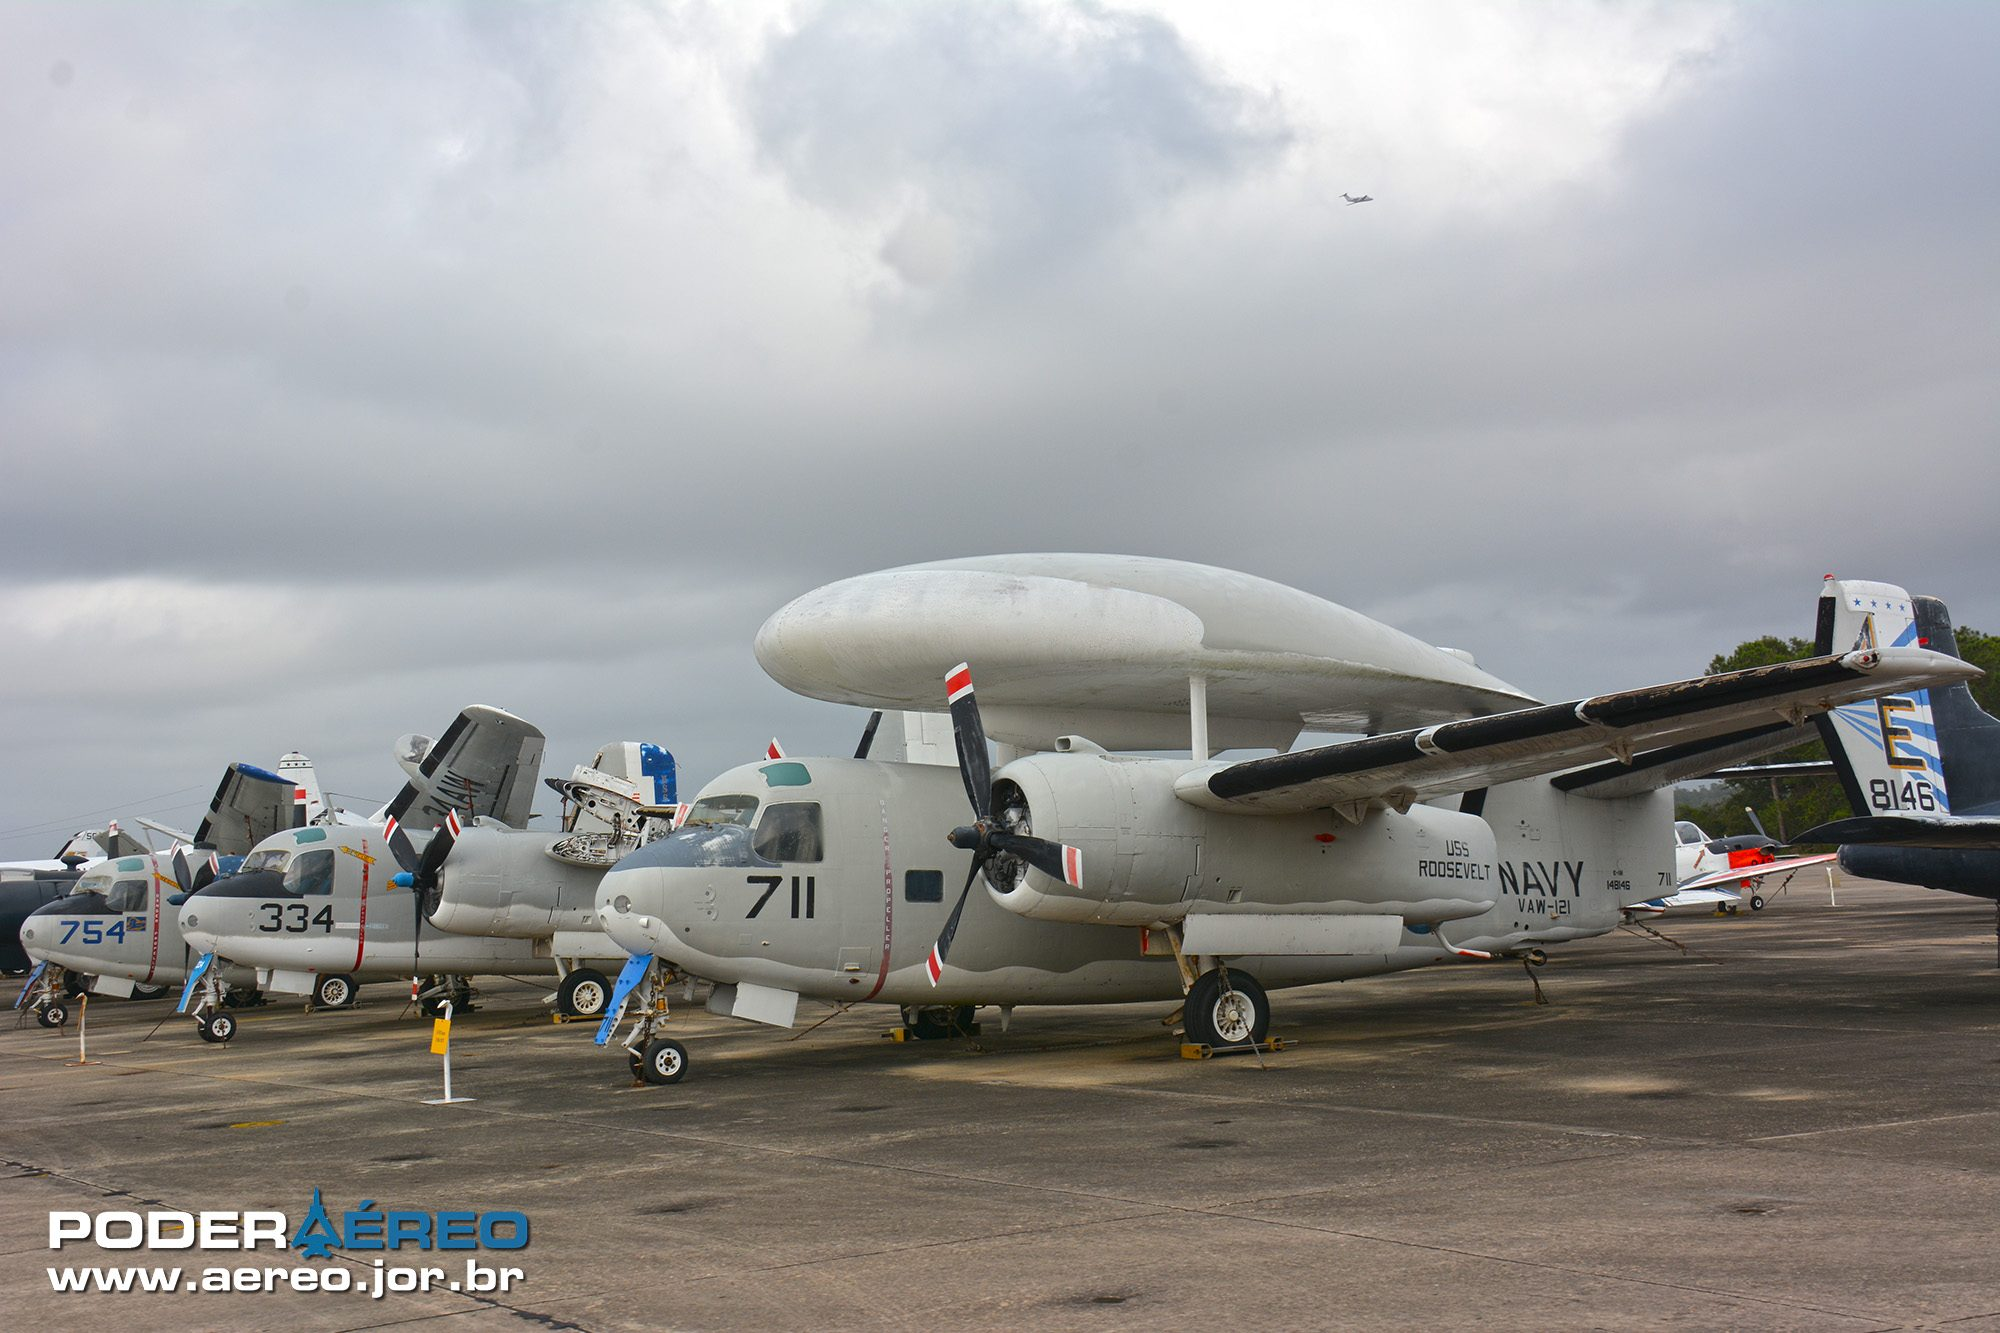 national-naval-aviation-museum-4